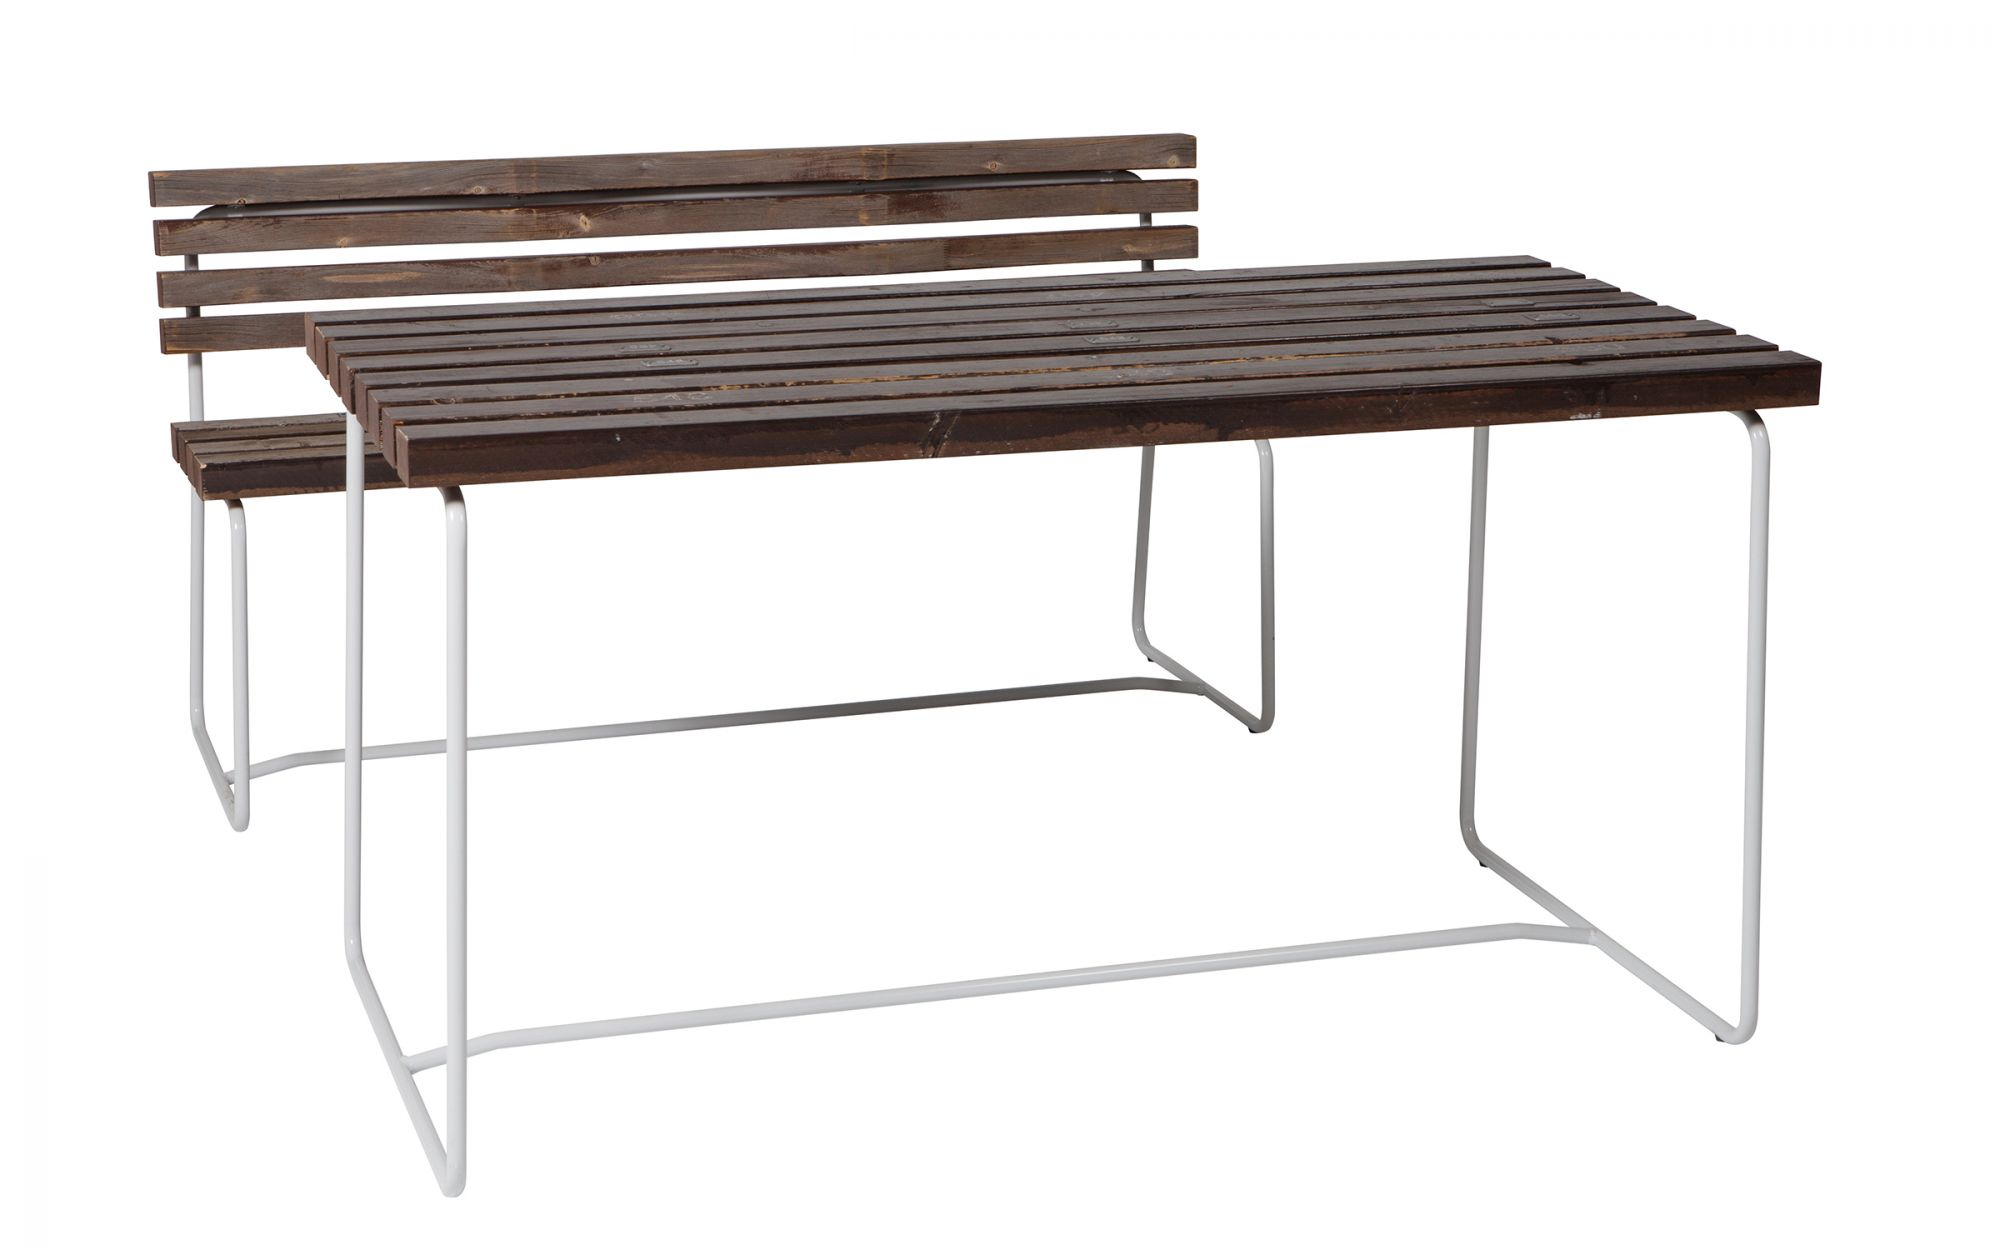 DiningTable-bench-Stadion